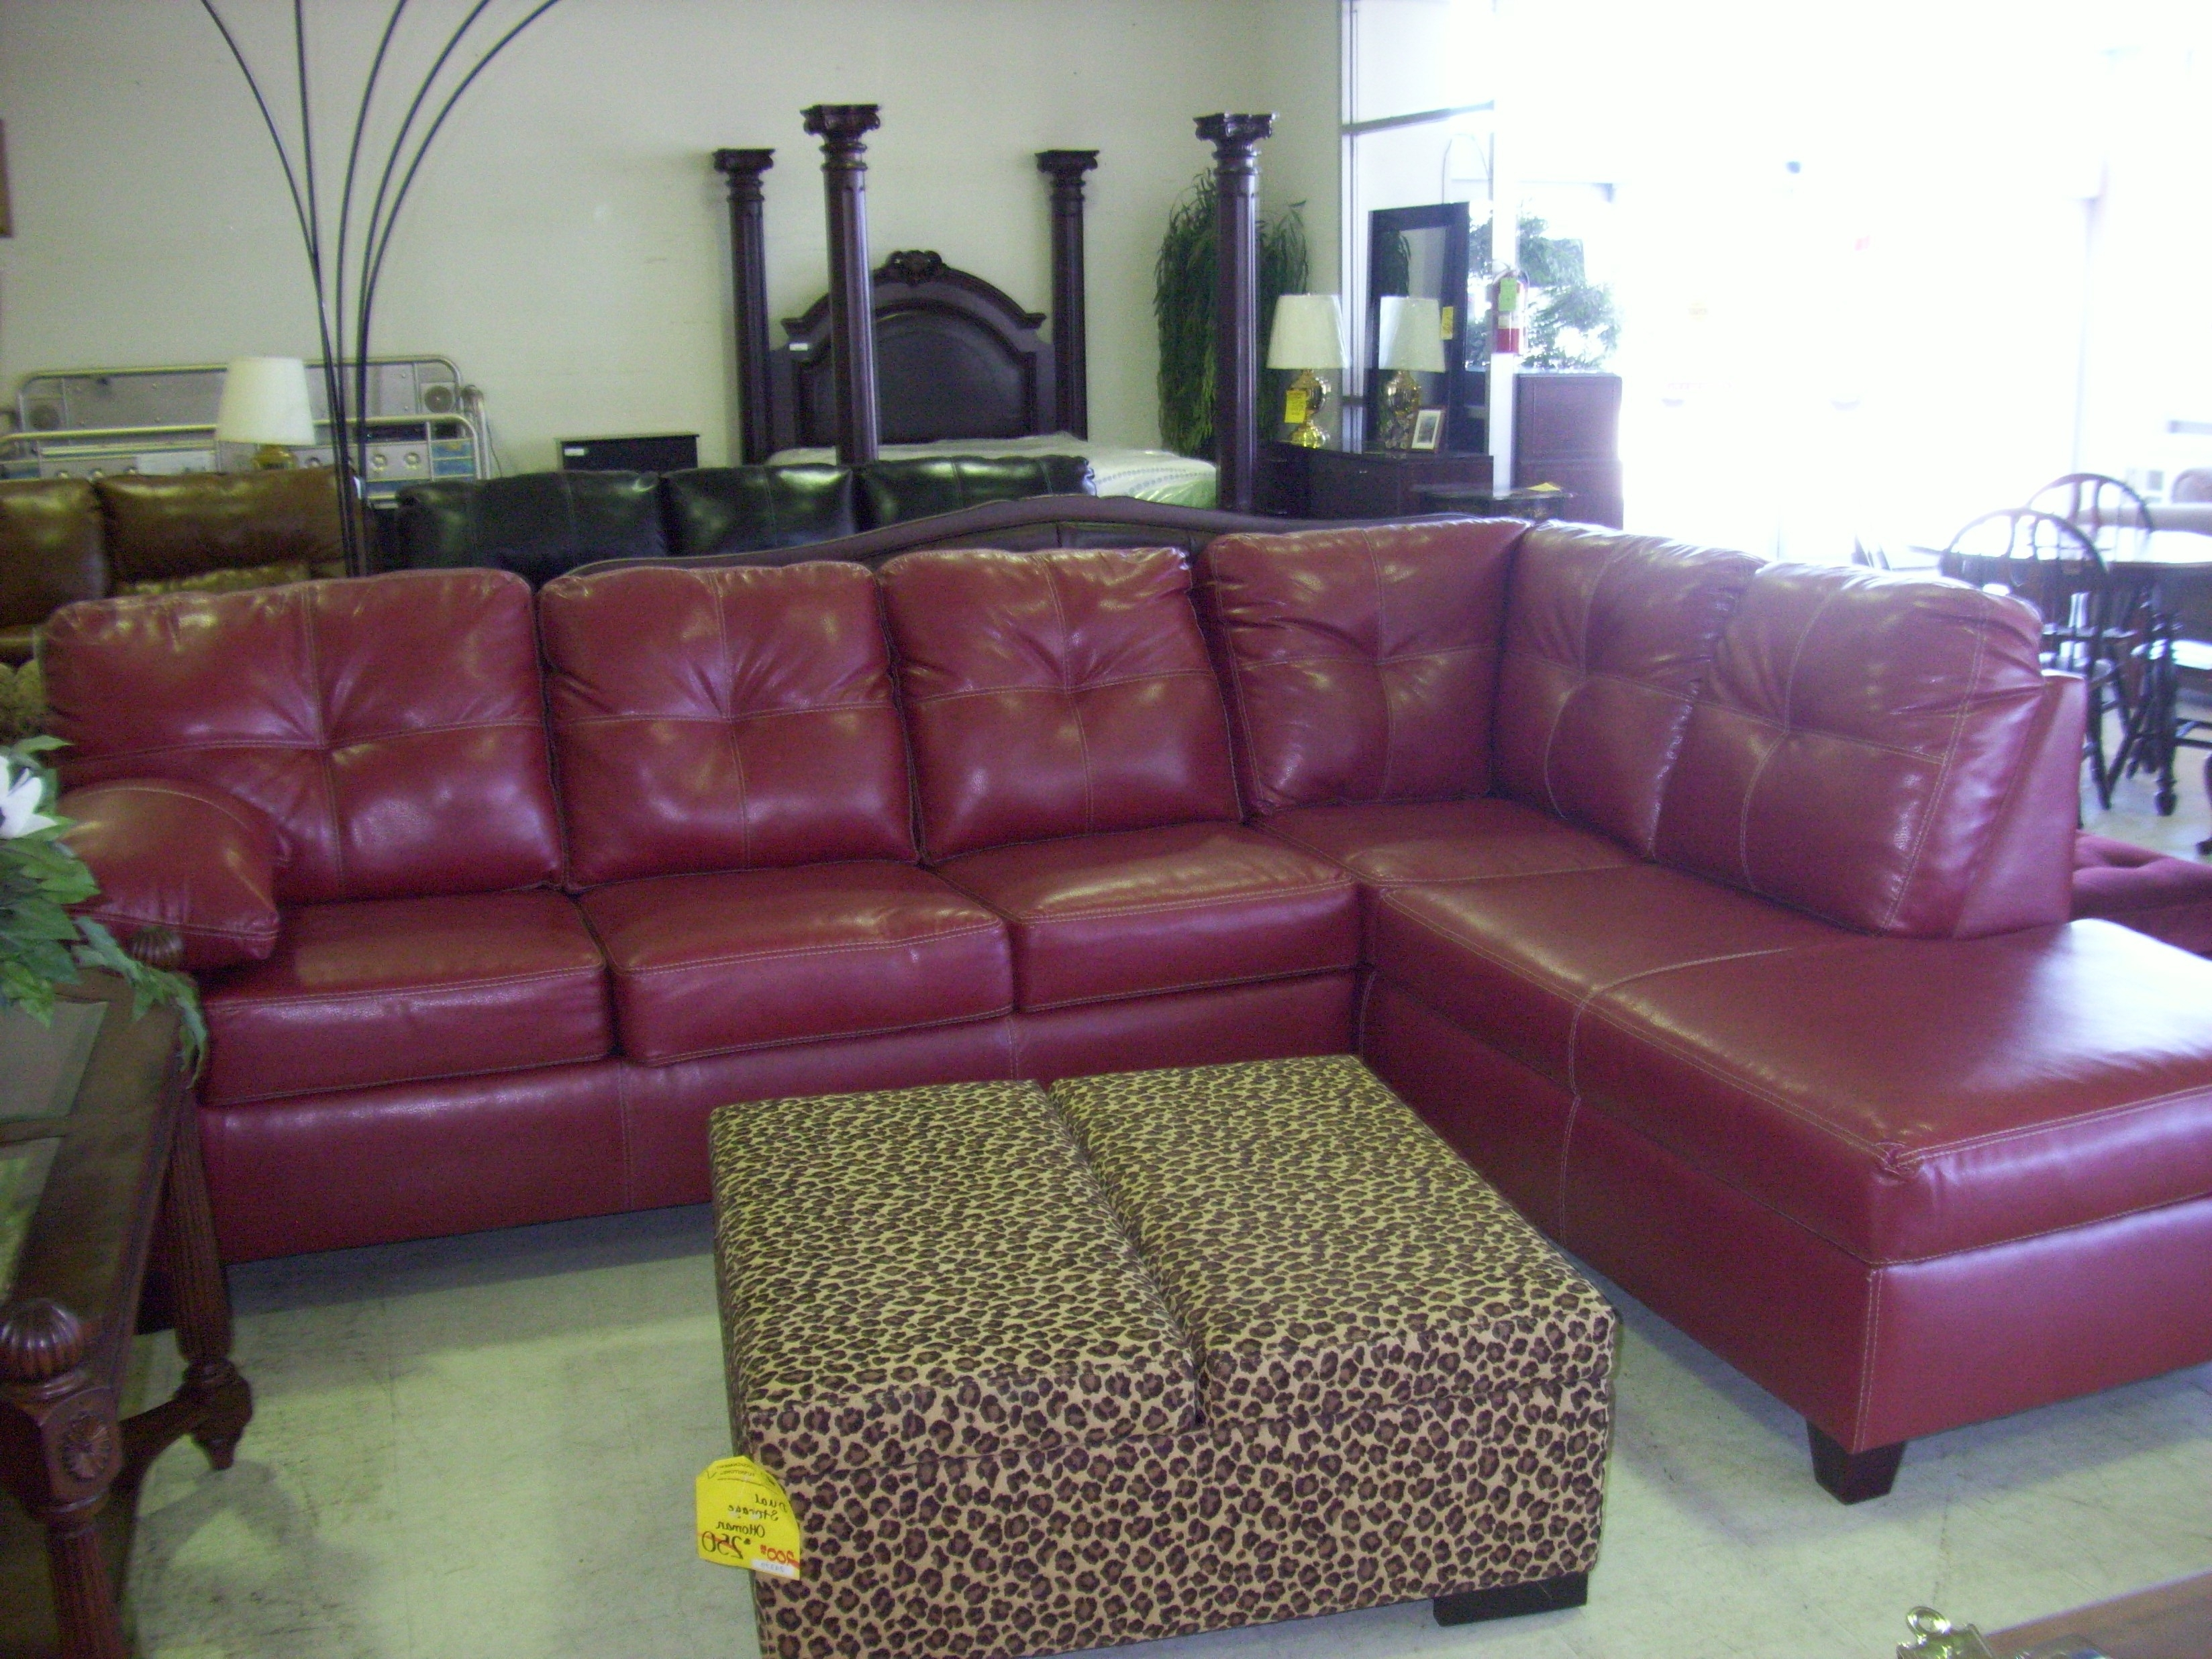 Red Leather Sectional Sofas With Recliners Intended For Latest Sofas : Leather Sectional Sofa U Shaped Couch Red Leather (View 8 of 15)